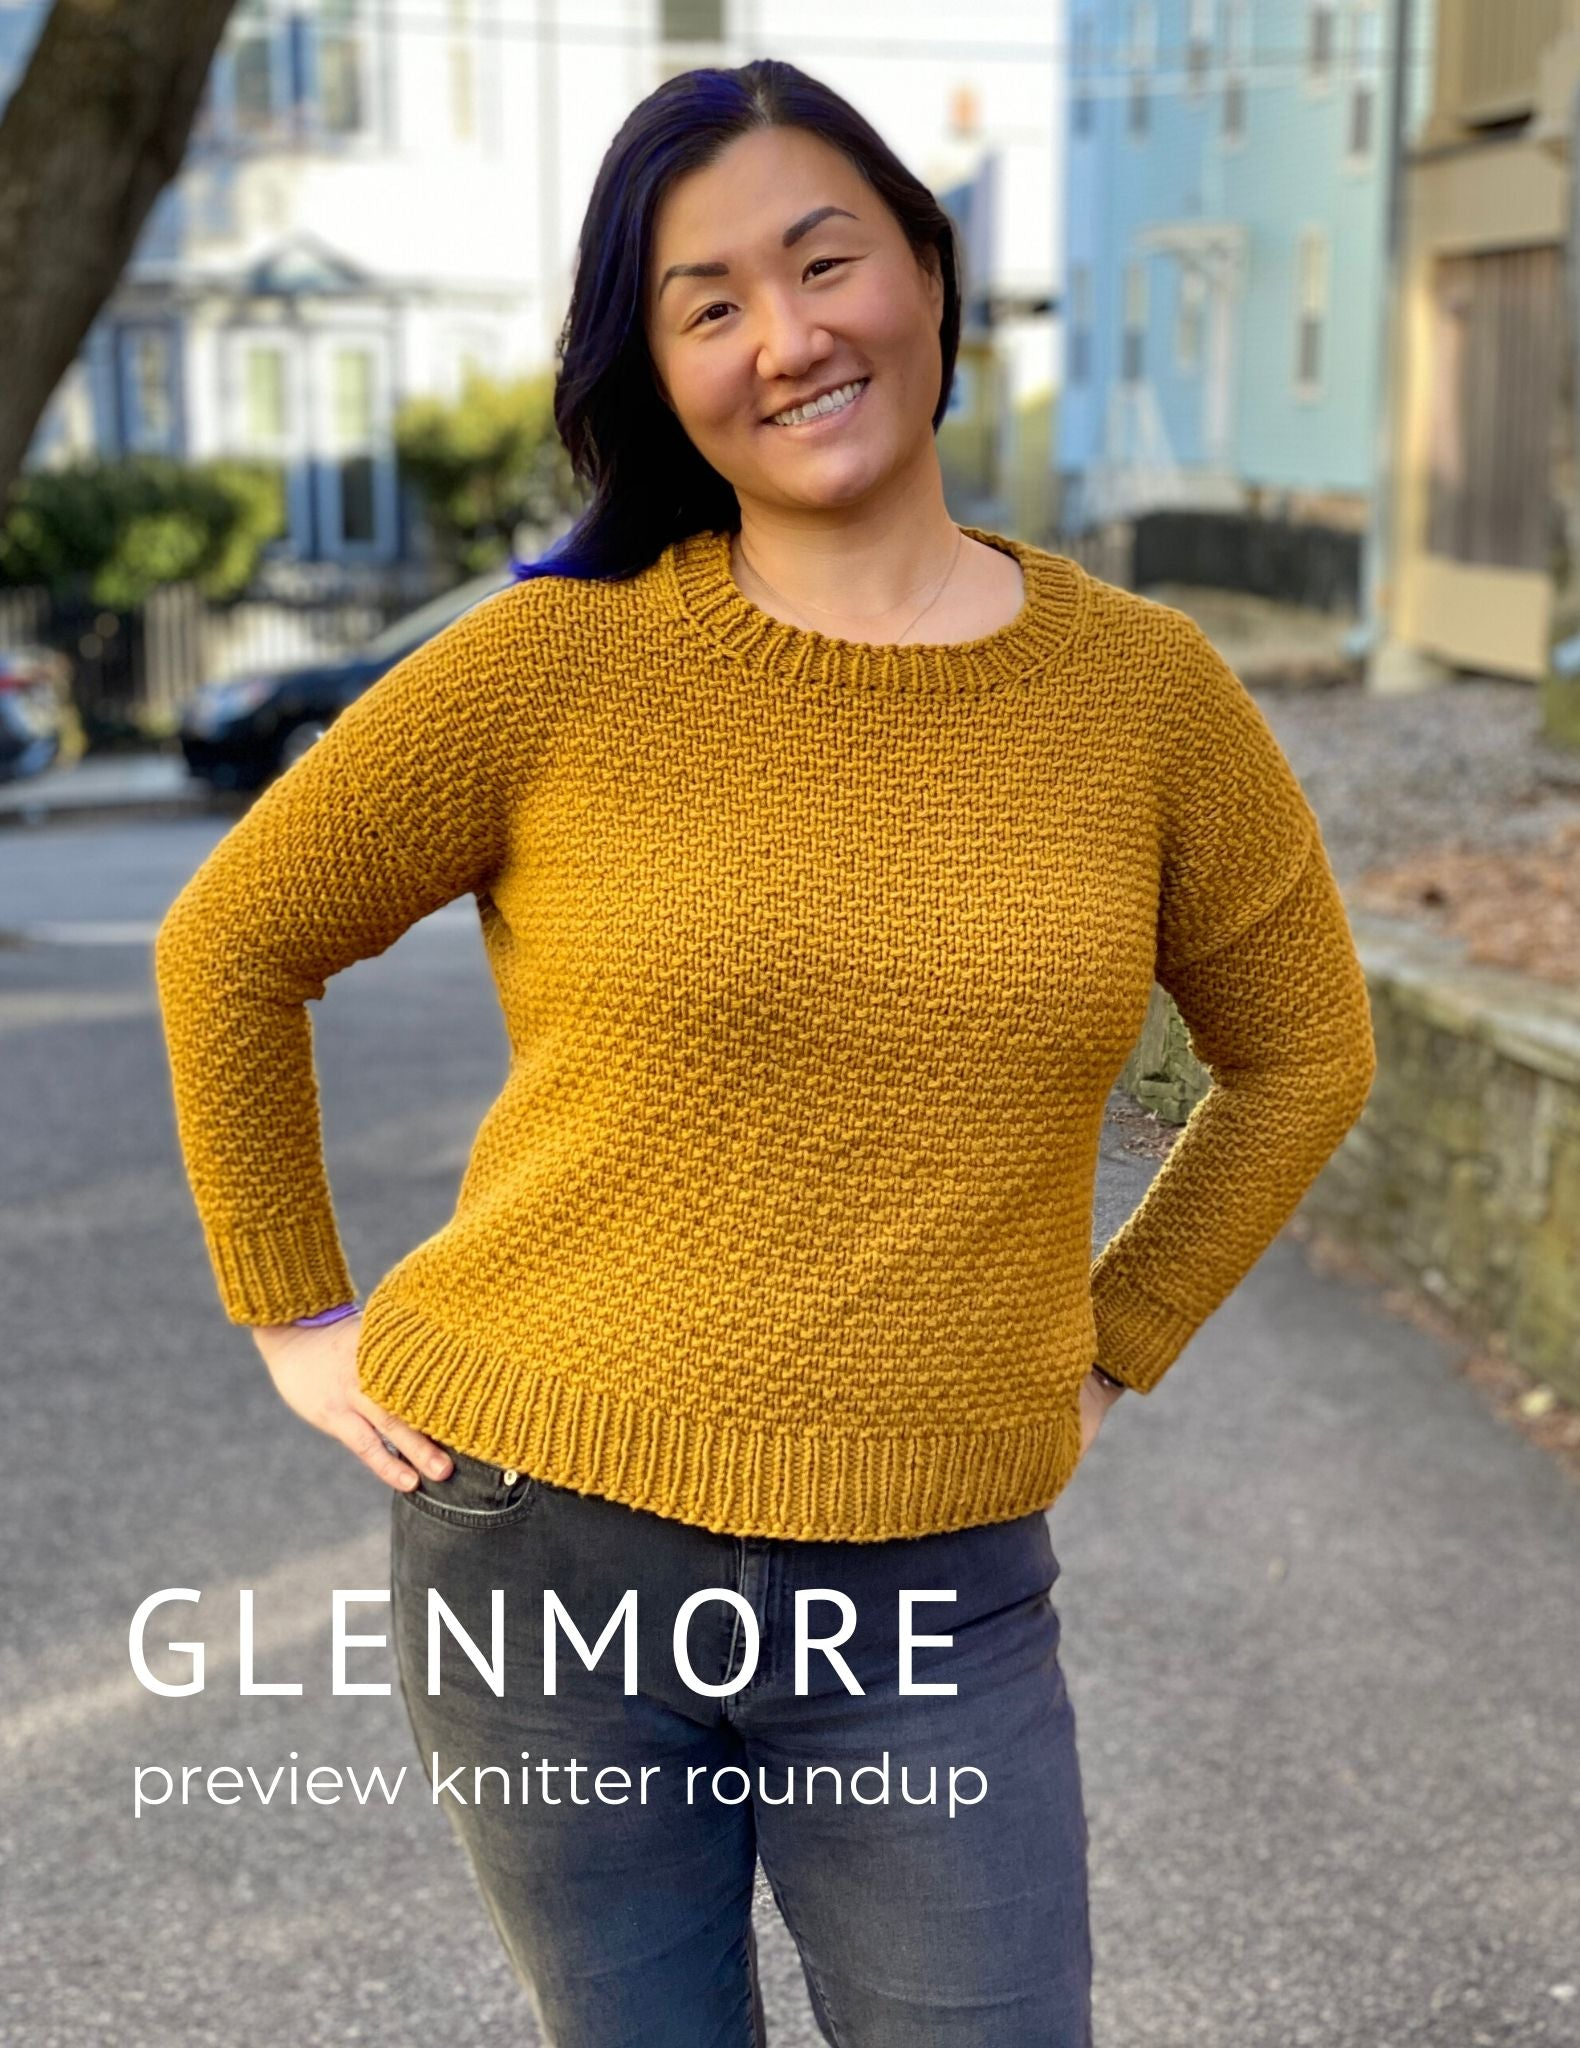 Glenmore: A knitted sweater design for all bodies